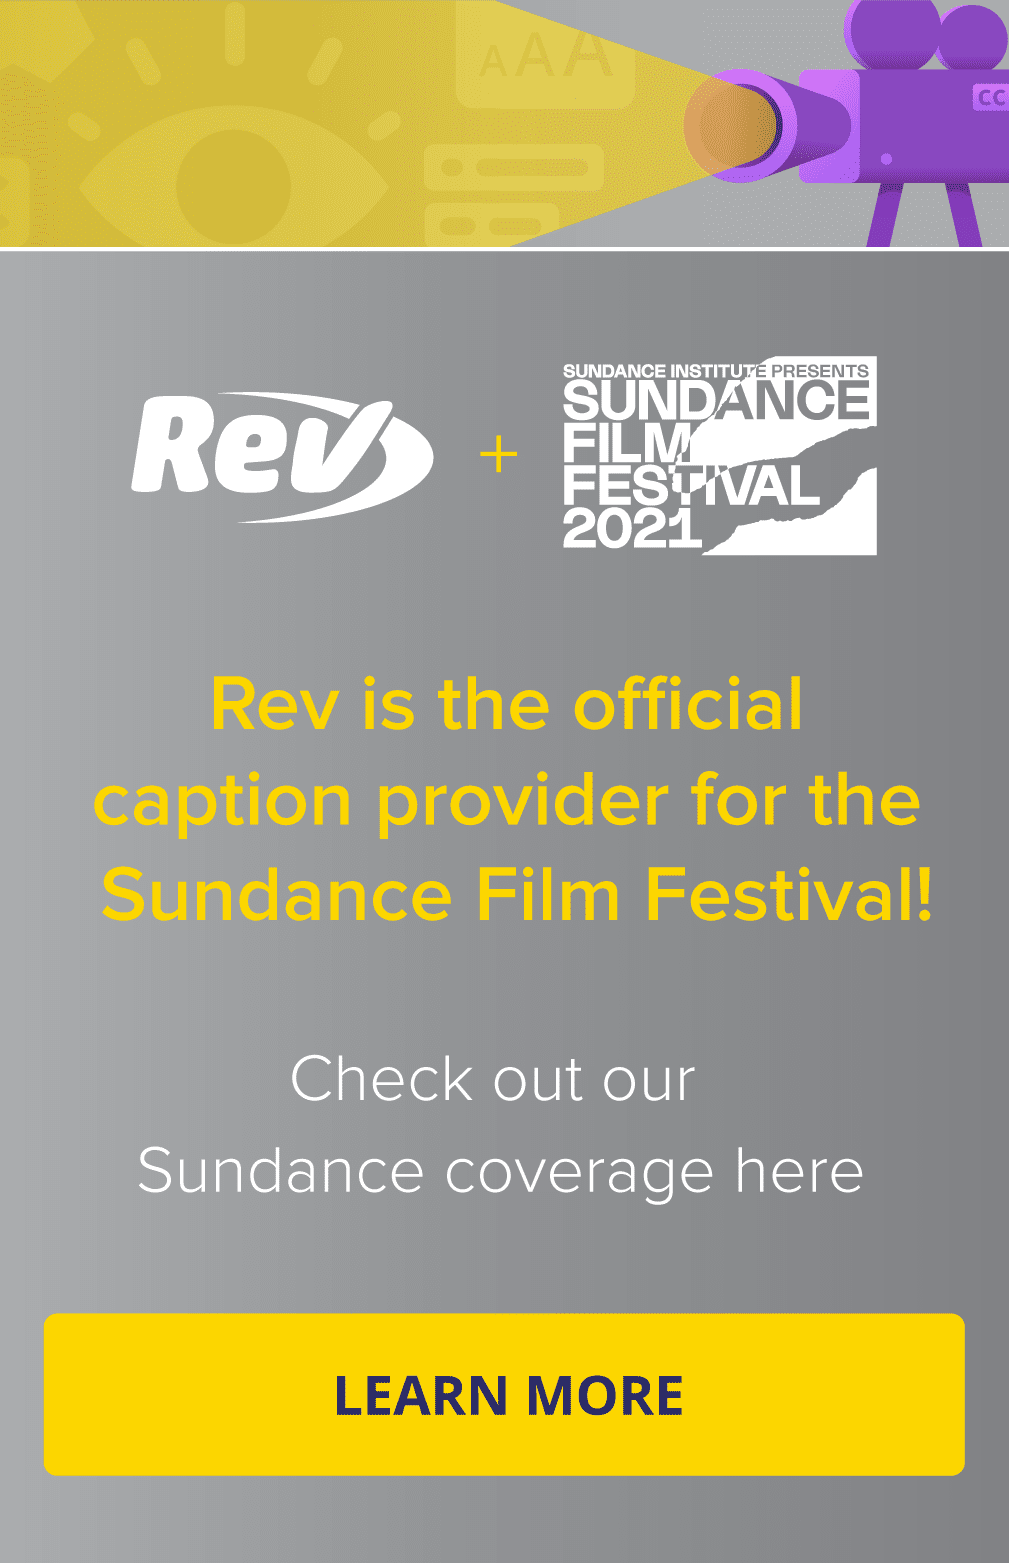 Rev Sundance Film Festival Coverage